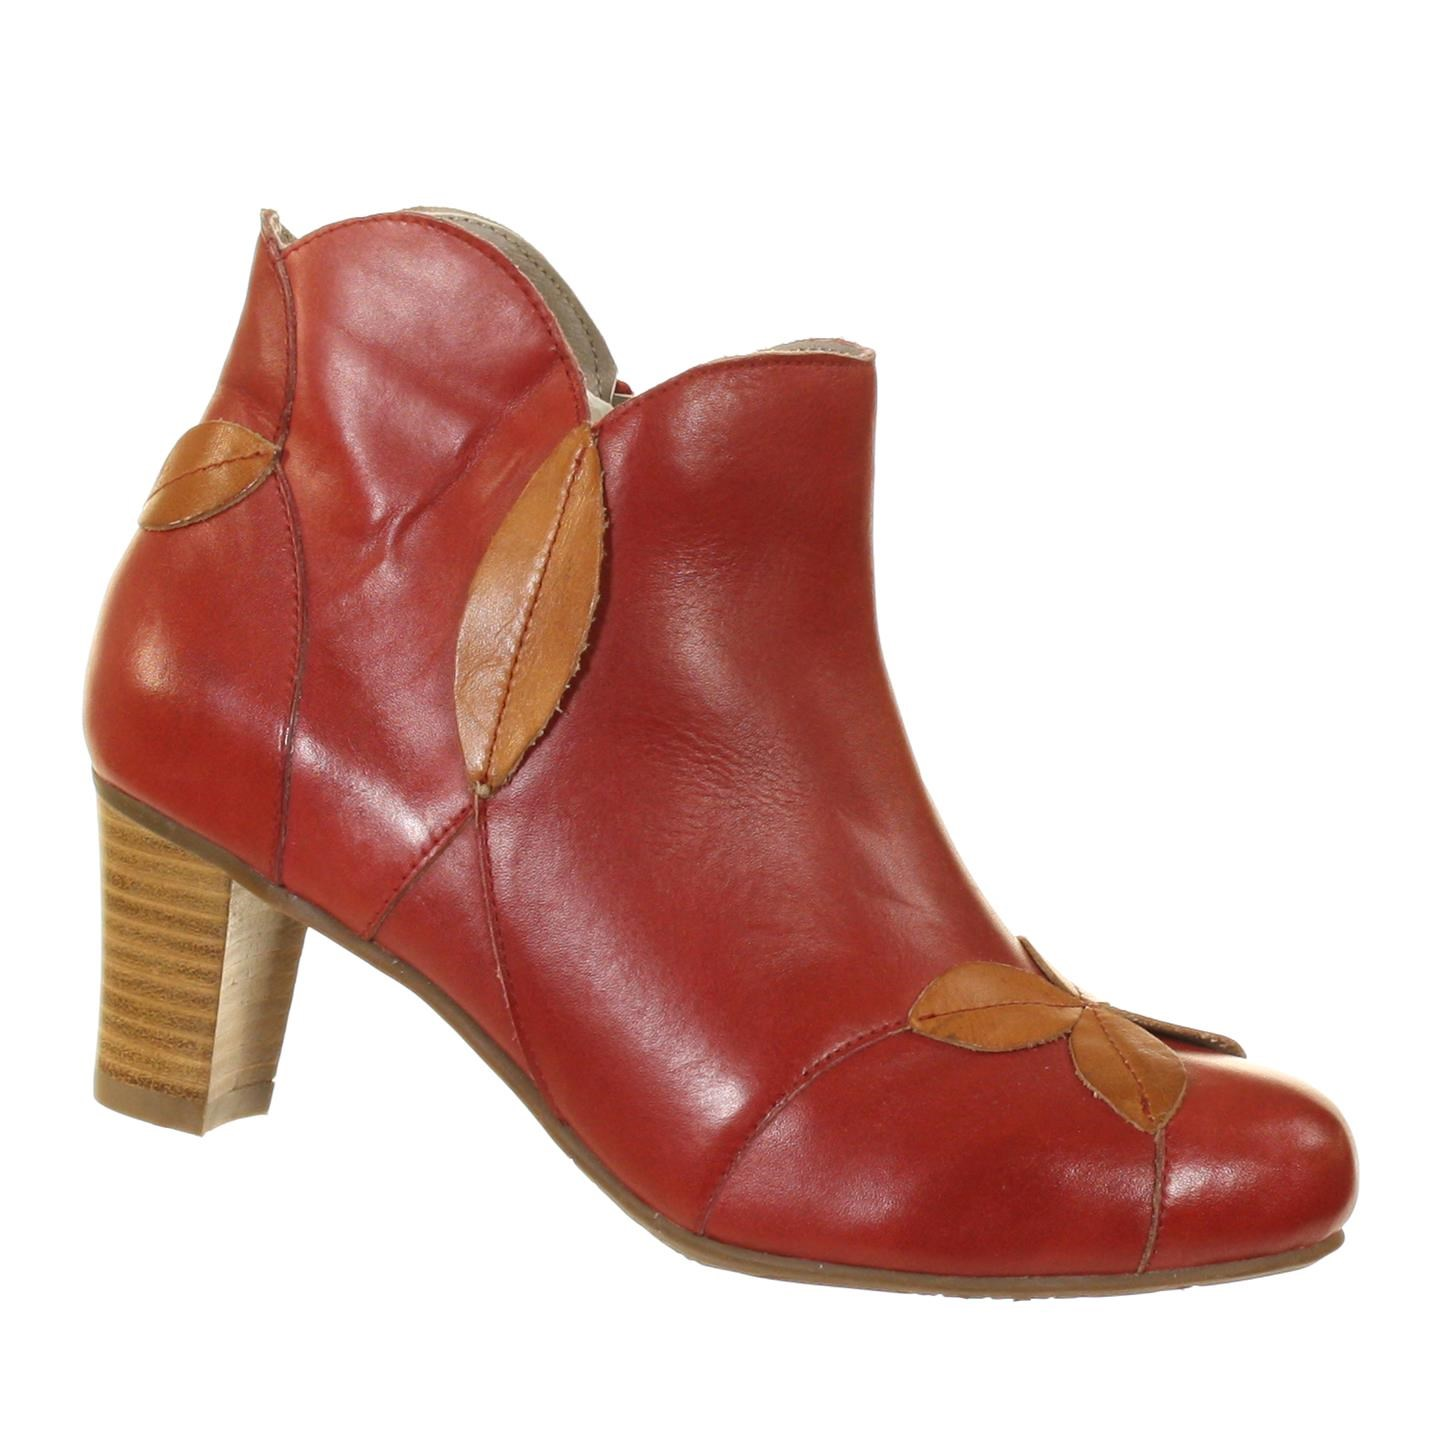 Spring Step L'Artiste Patisserie Red Camel Womens Display Model Ankle Boots 37 (US: 6.5-7) by Spring Step